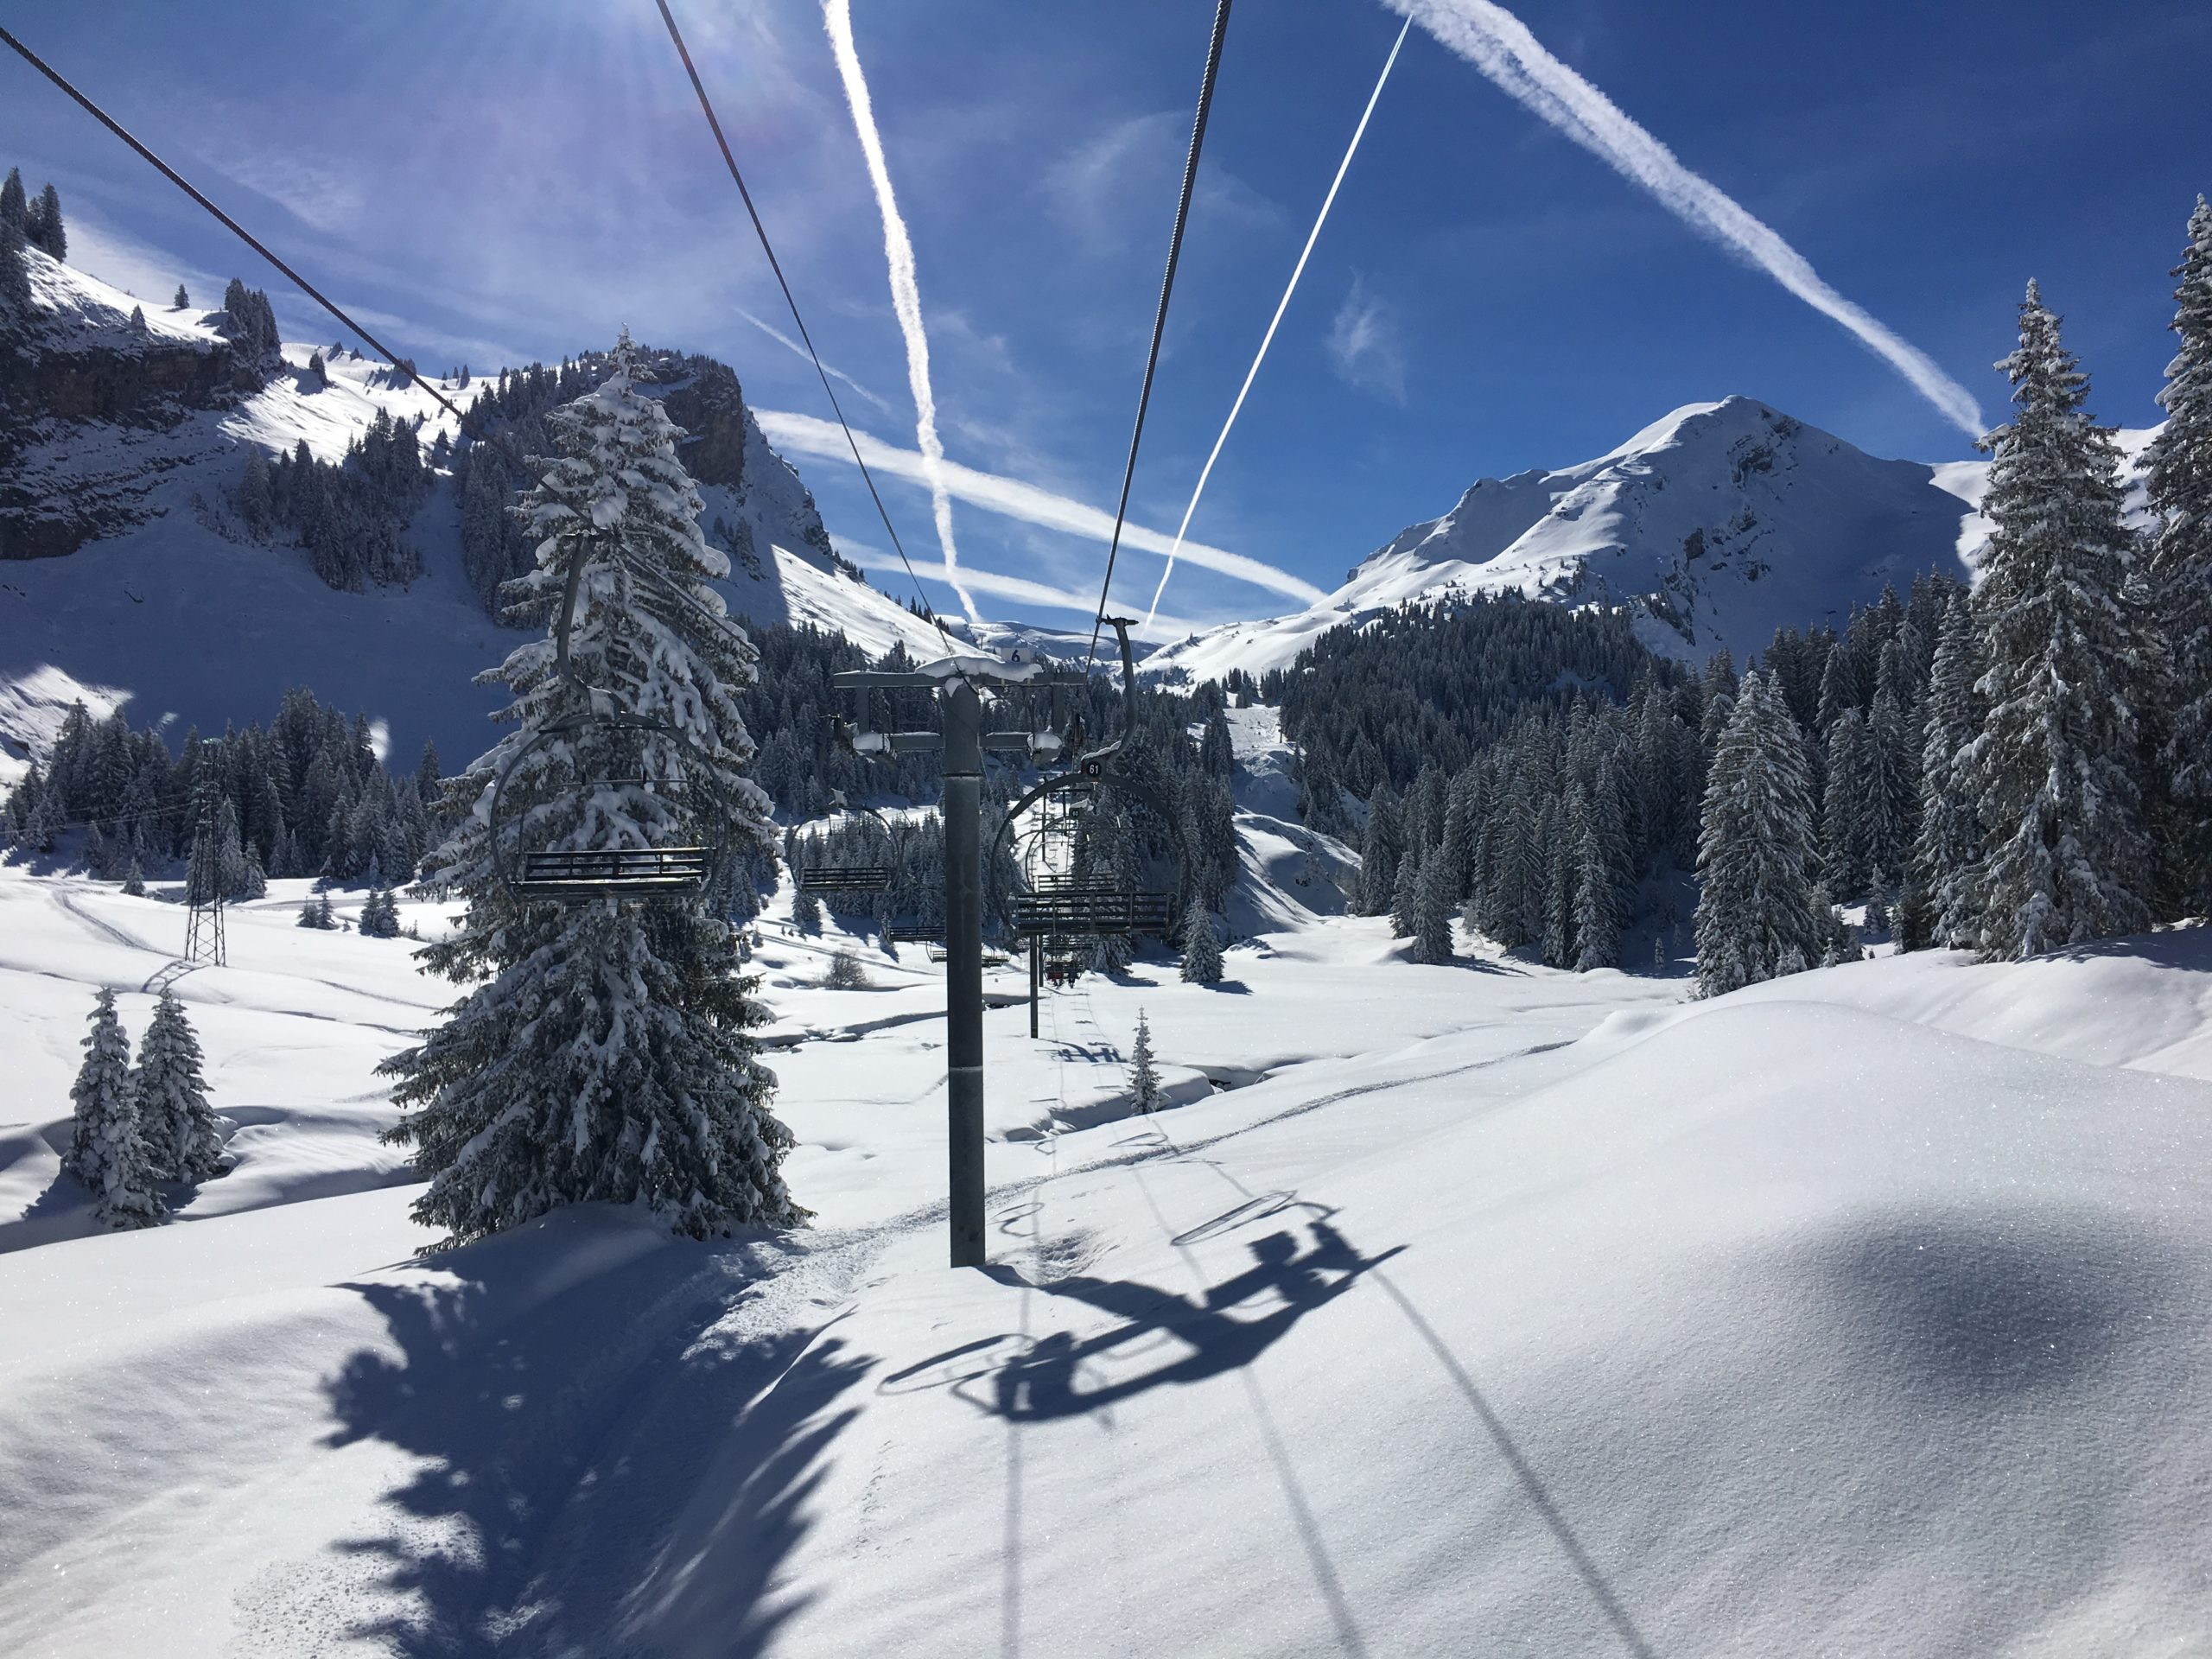 Luxury Winter Ski in Chatel, France